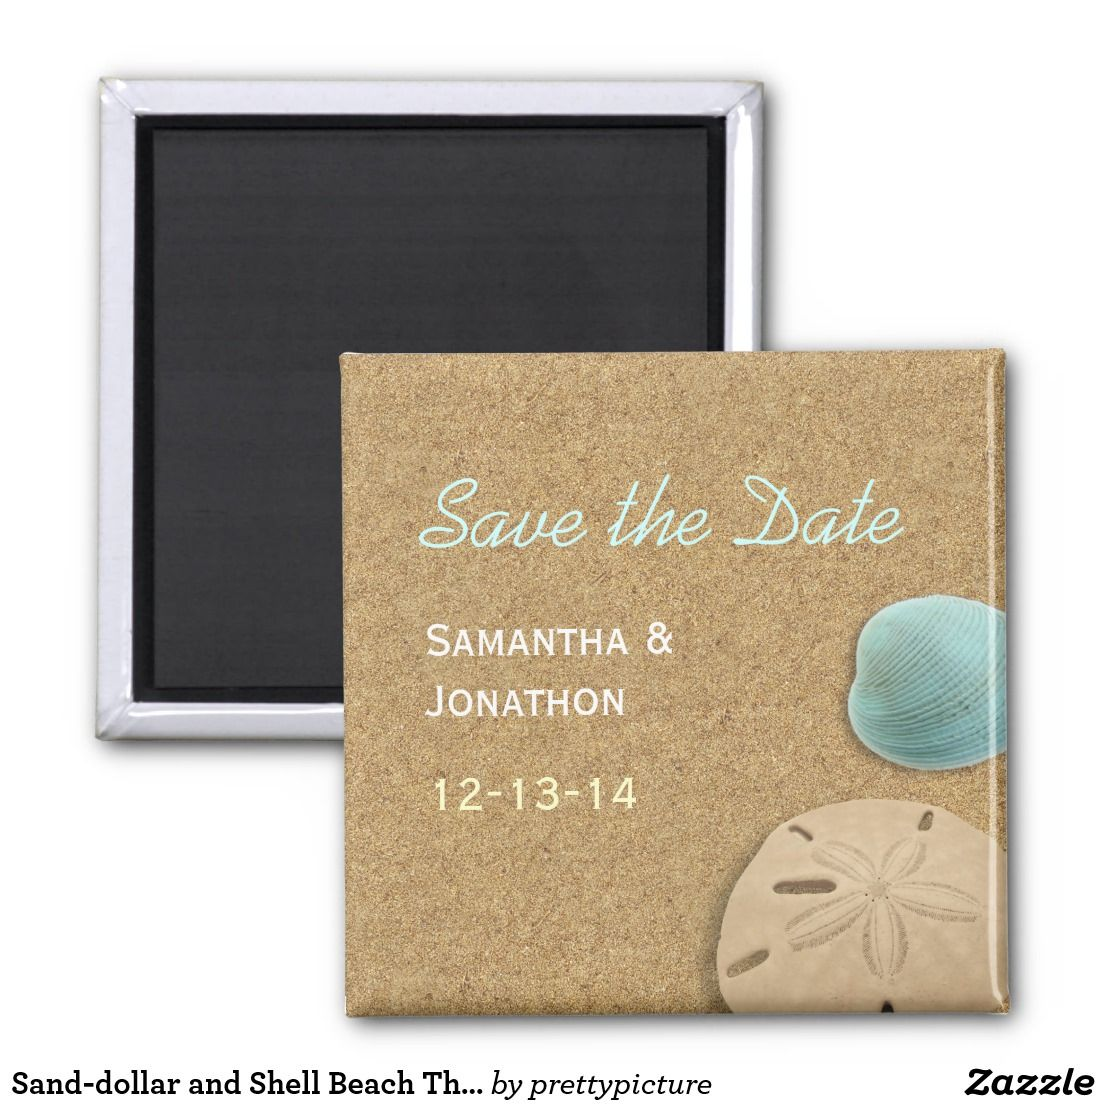 Sanddollar and Shell Beach Theme Save the Date